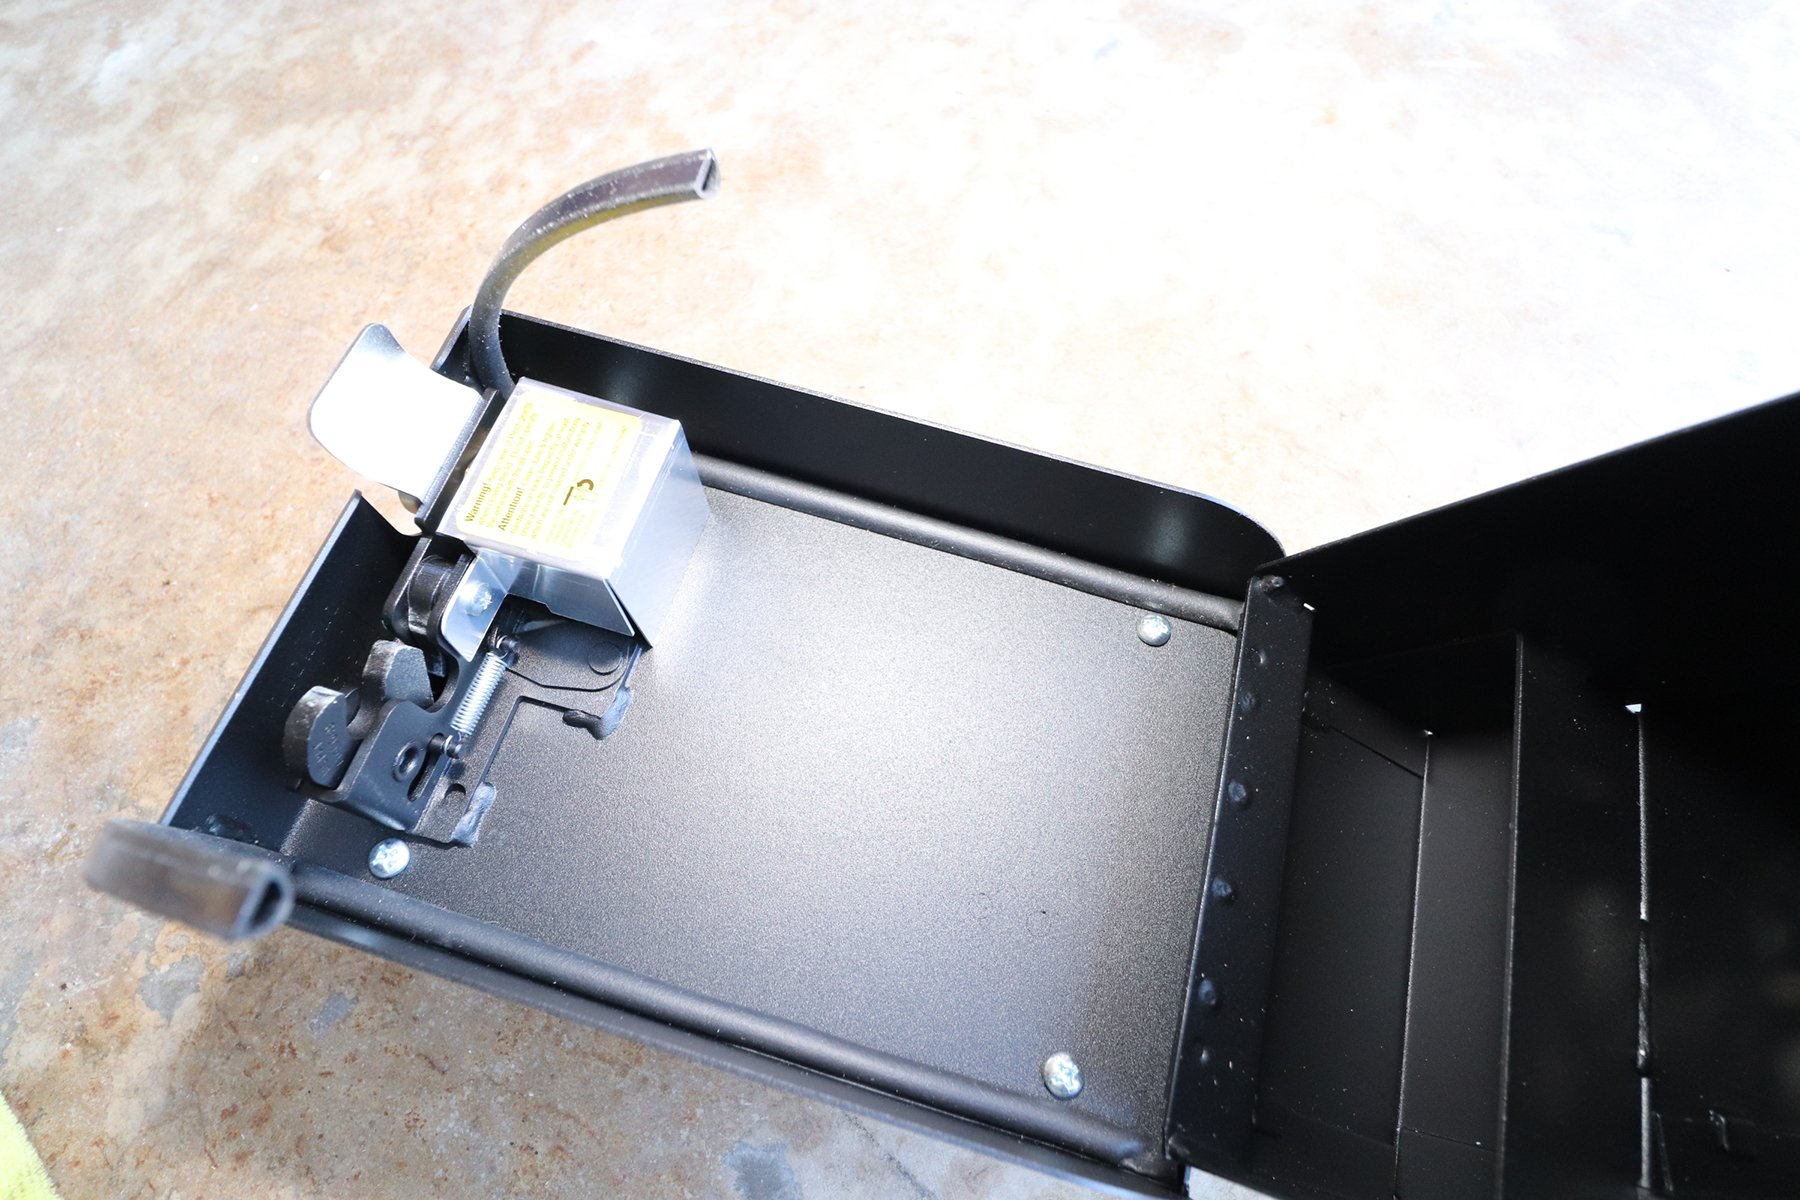 Installing the Console Safe